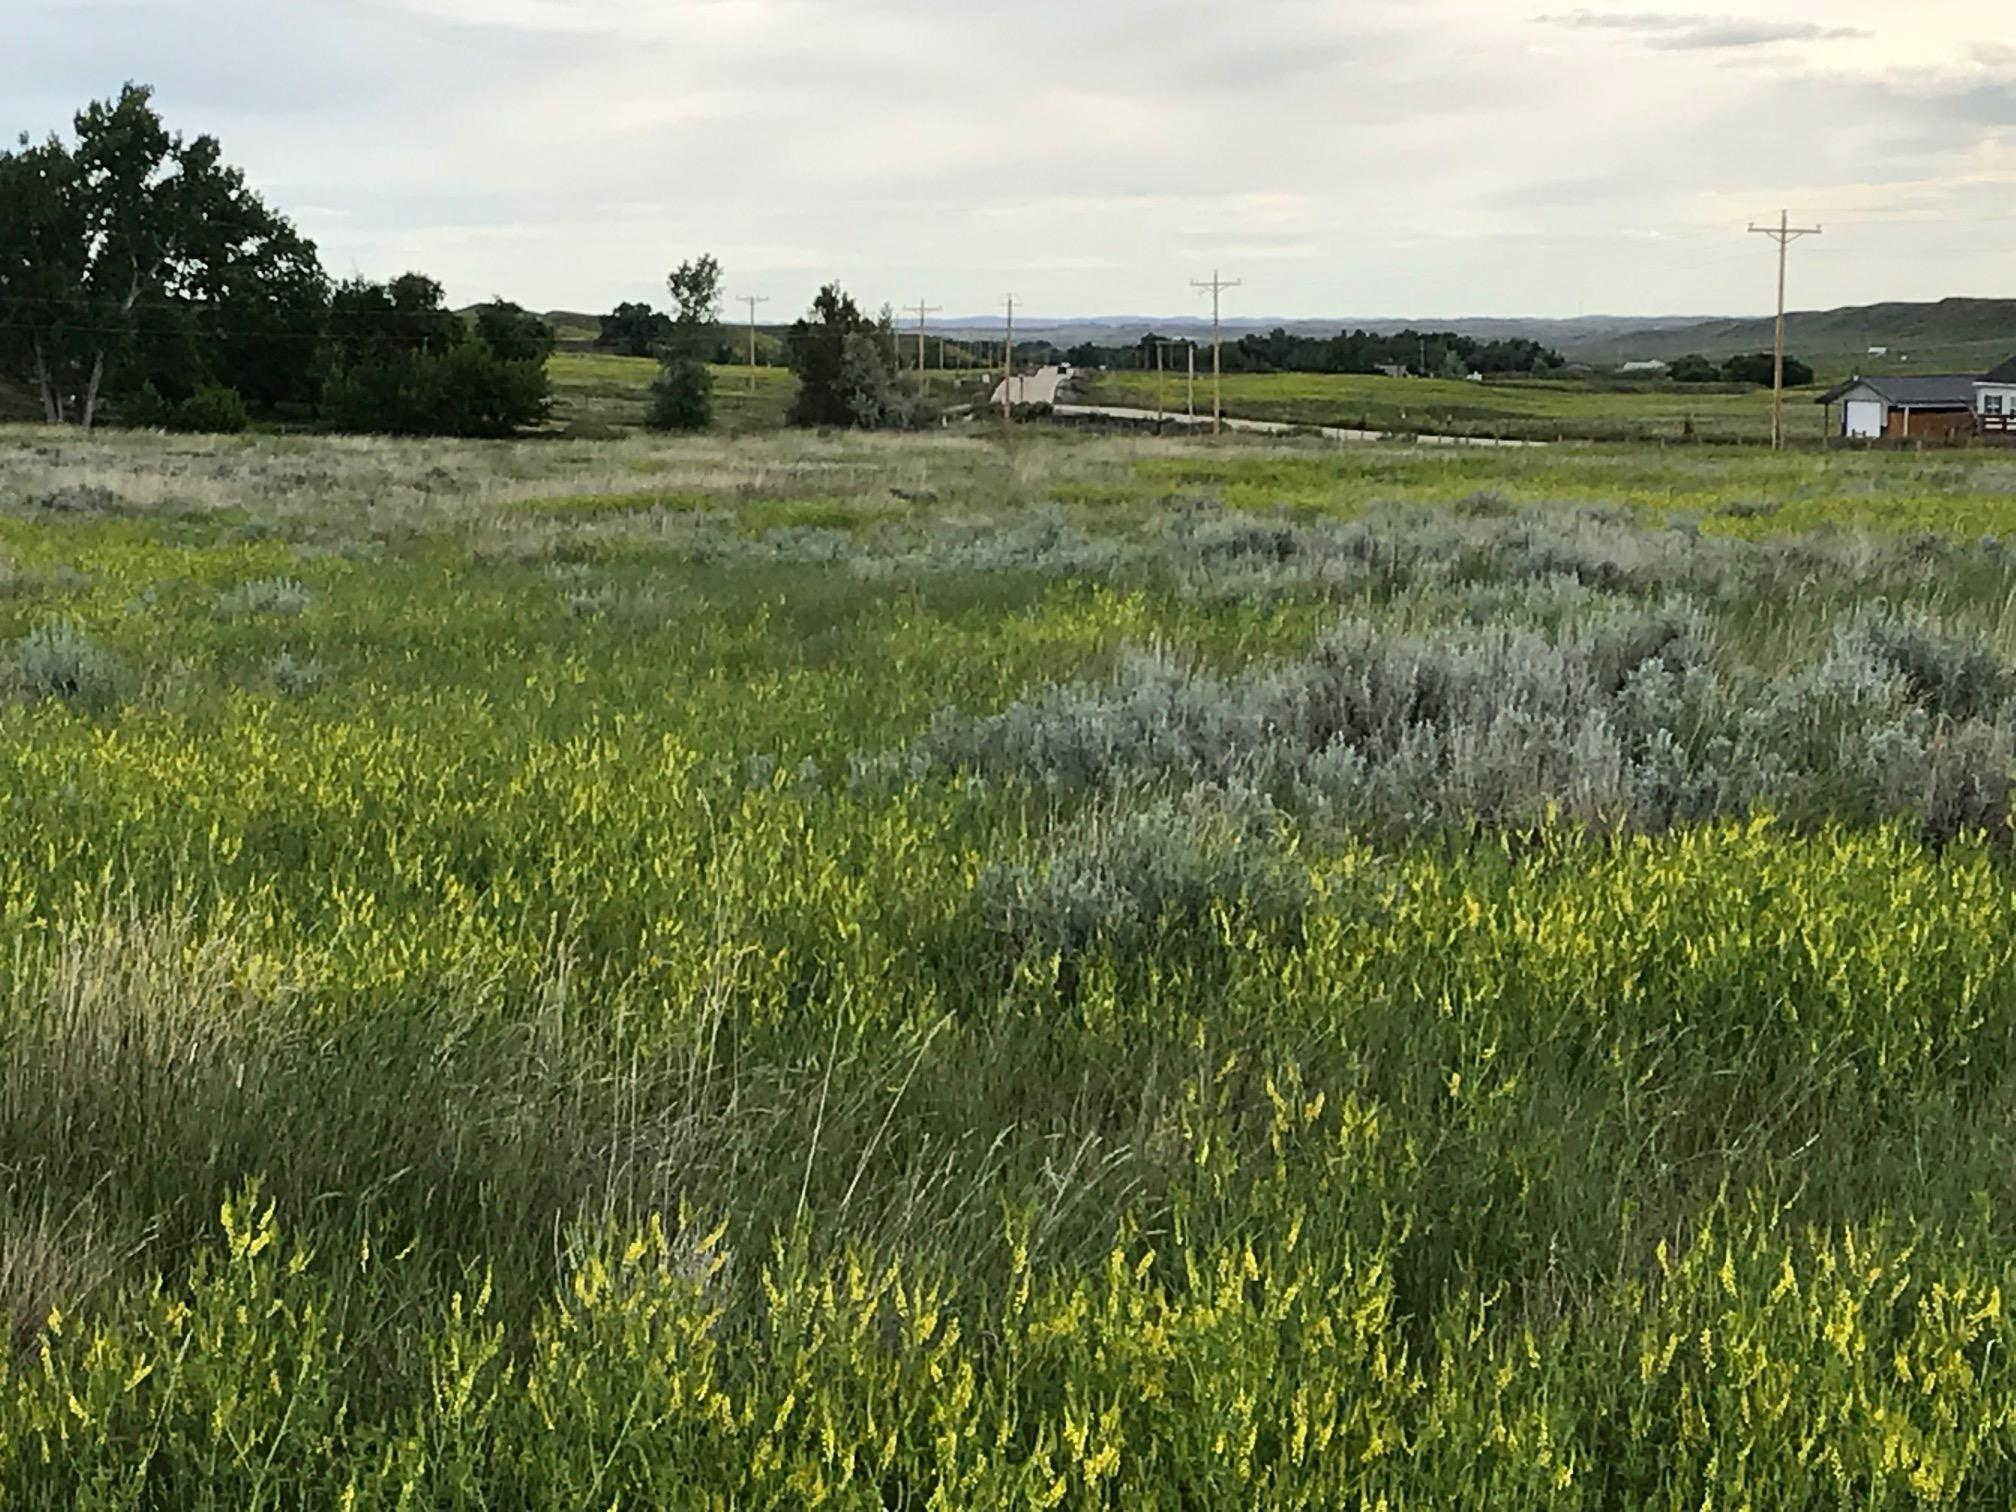 Lot 20 TBD, Buffalo, Wyoming 82834, ,Building Site,For Sale,TBD,17-731